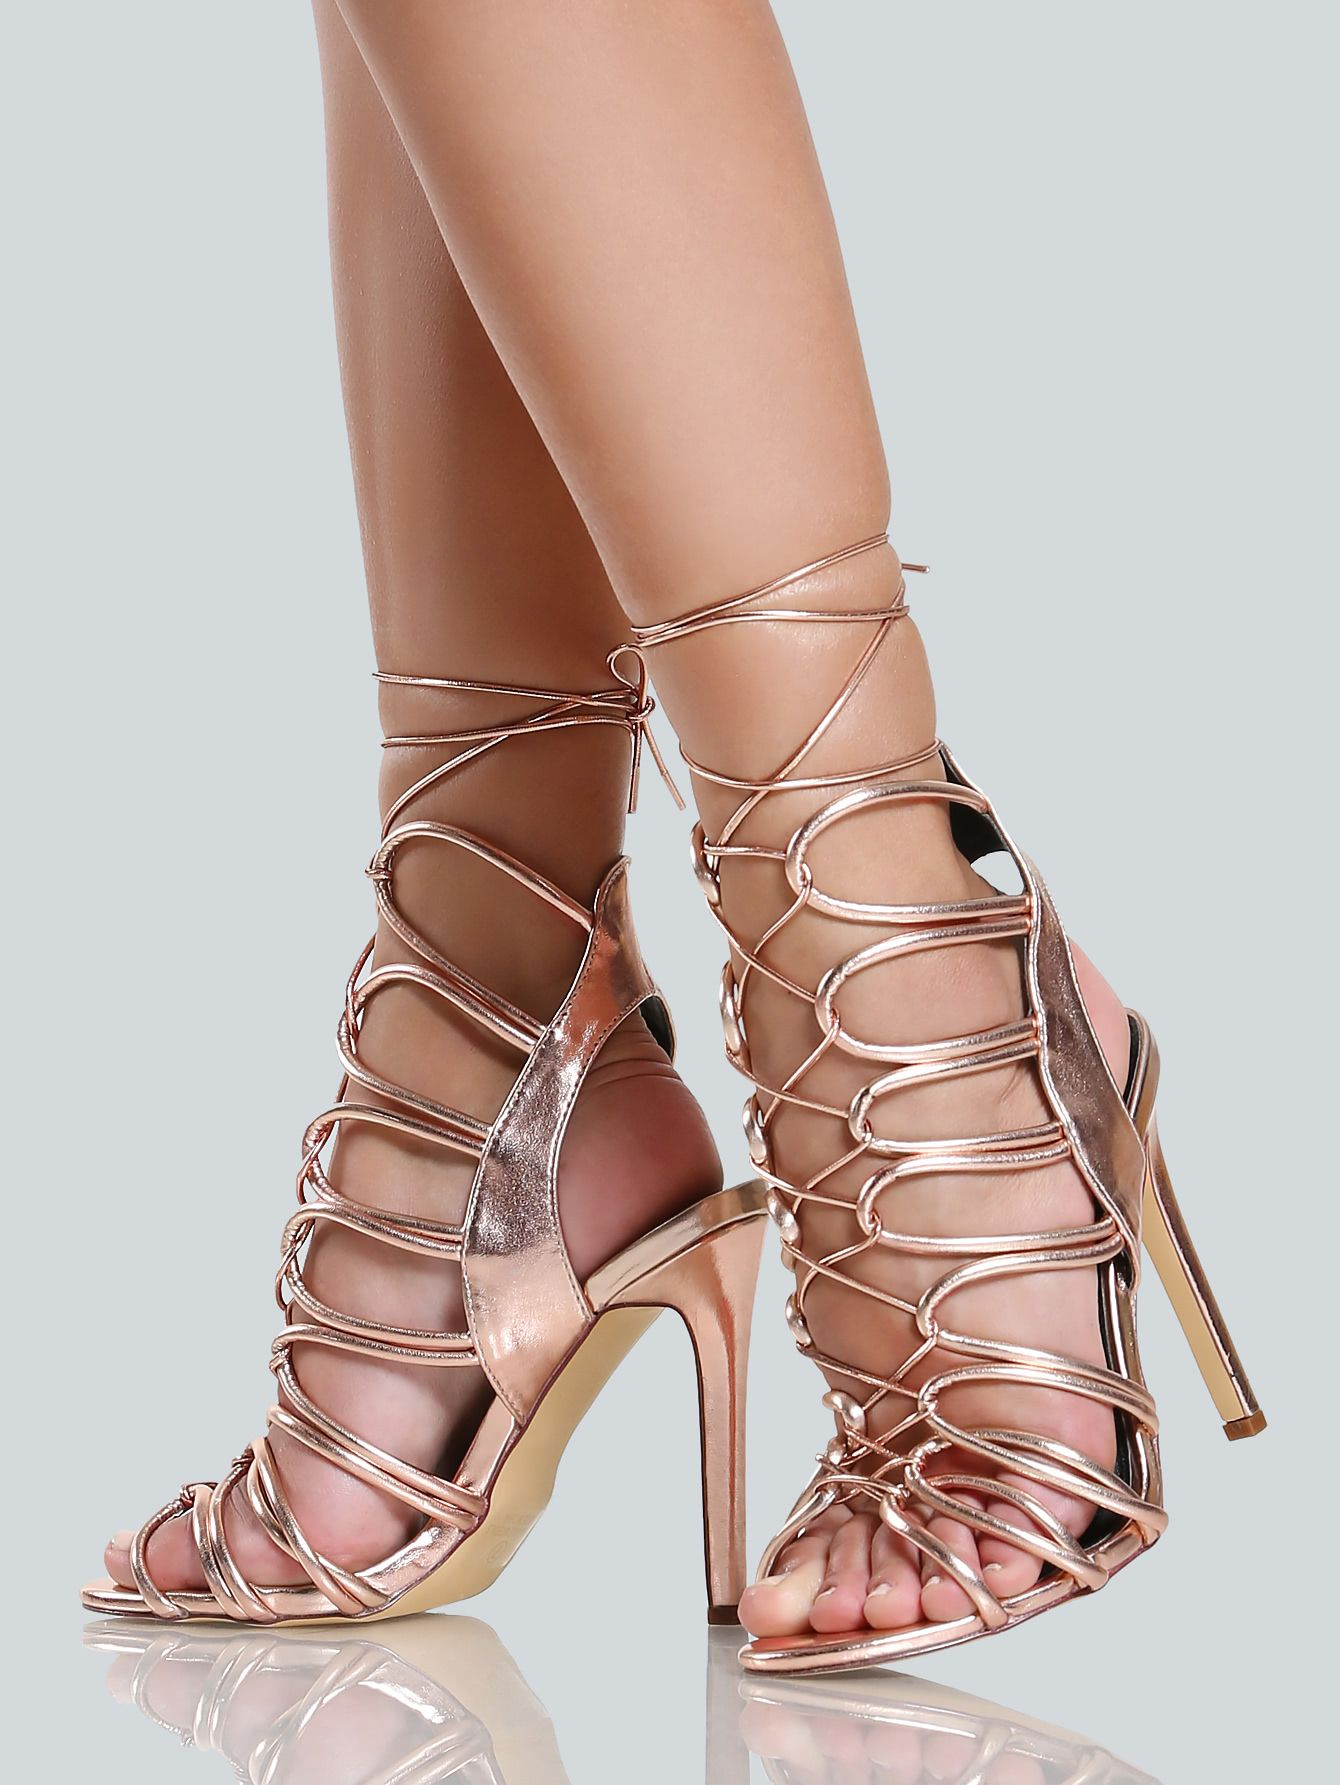 3a20e6c55f1 Tie+Up+Braided+Strappy+Heels+ROSE+GOLD+33.90